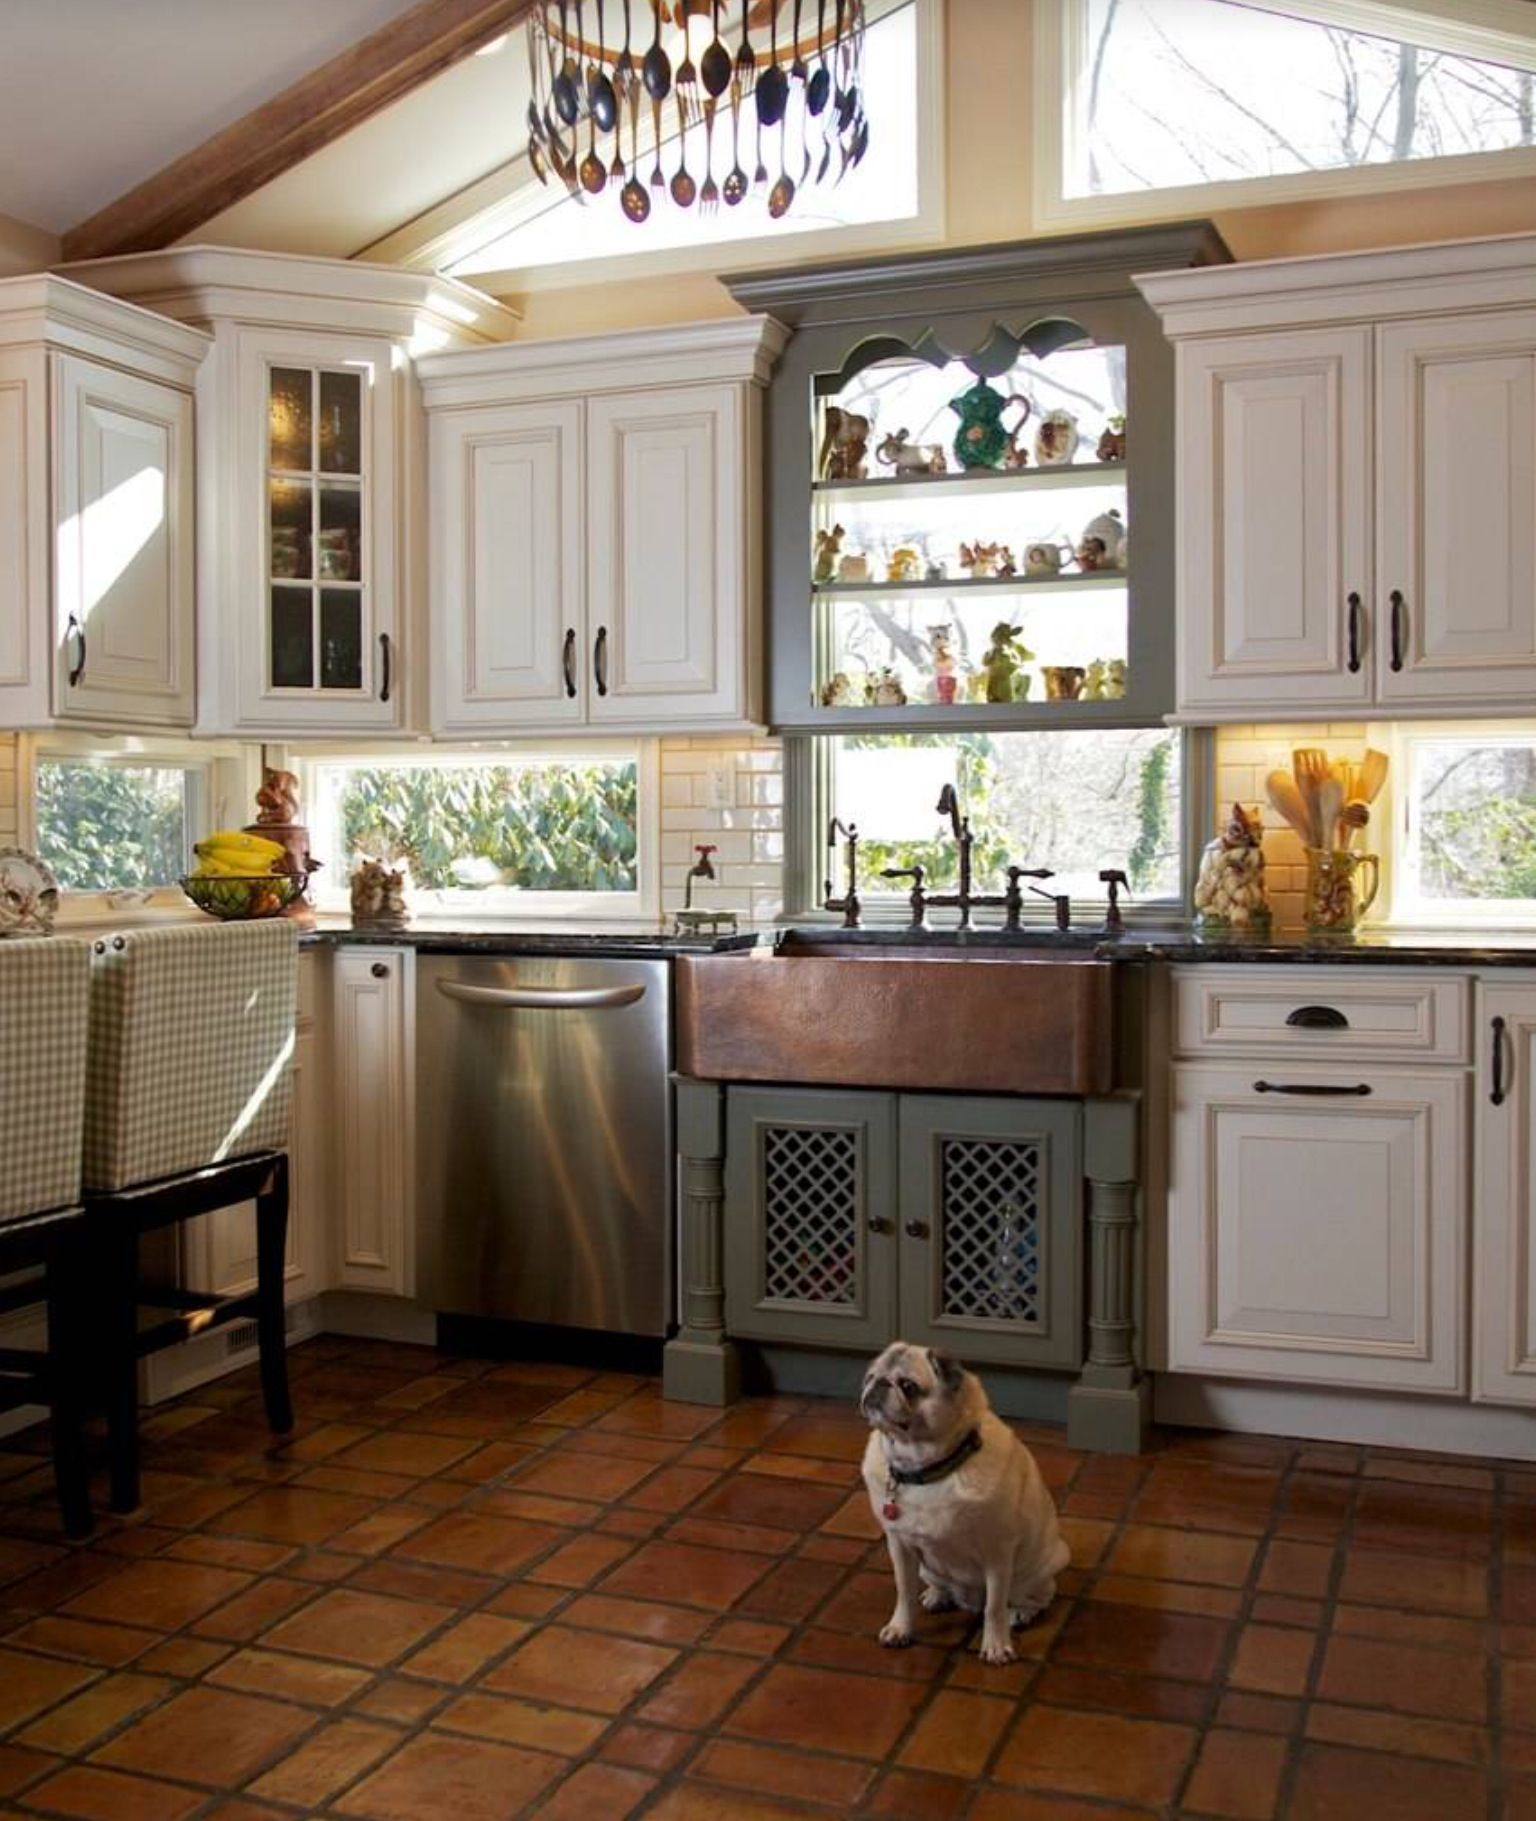 Kitchen window without sill  the dog makes the kitchen   kitchen  pinterest  kitchens